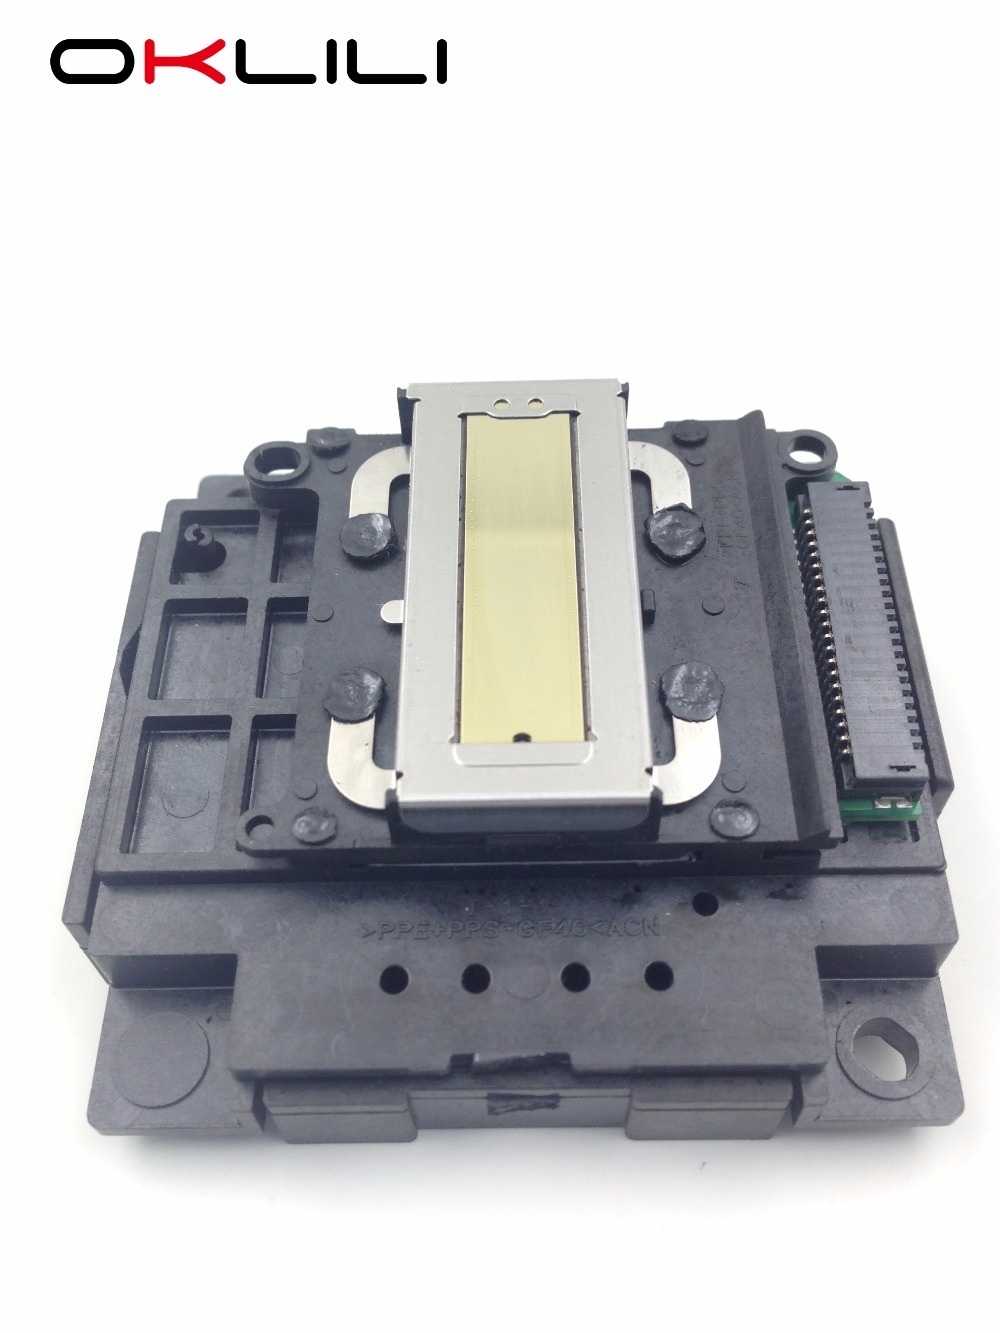 цены  FA04000 FA04010 Printhead Print Head Printer Head for Epson WF-2010 WF-2510 WF-2520 WF-2530 WF-2540 ME401 ME303 WF2010 WF2510